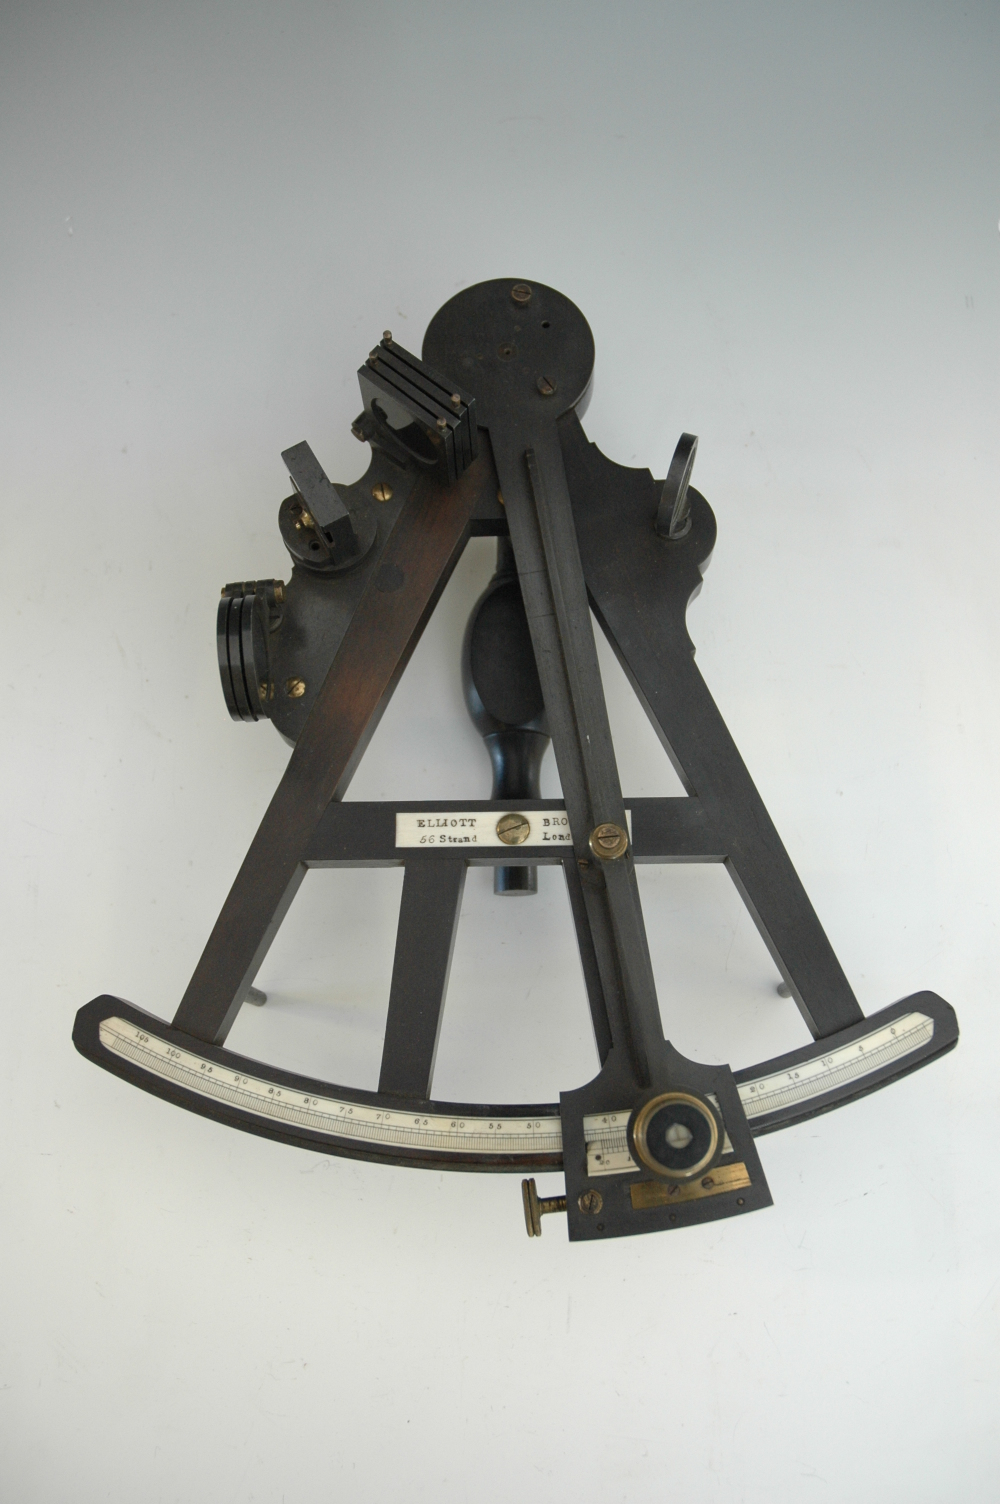 preview image for Ebony Octant and Case, by Elliott Brothers, London, 1850s